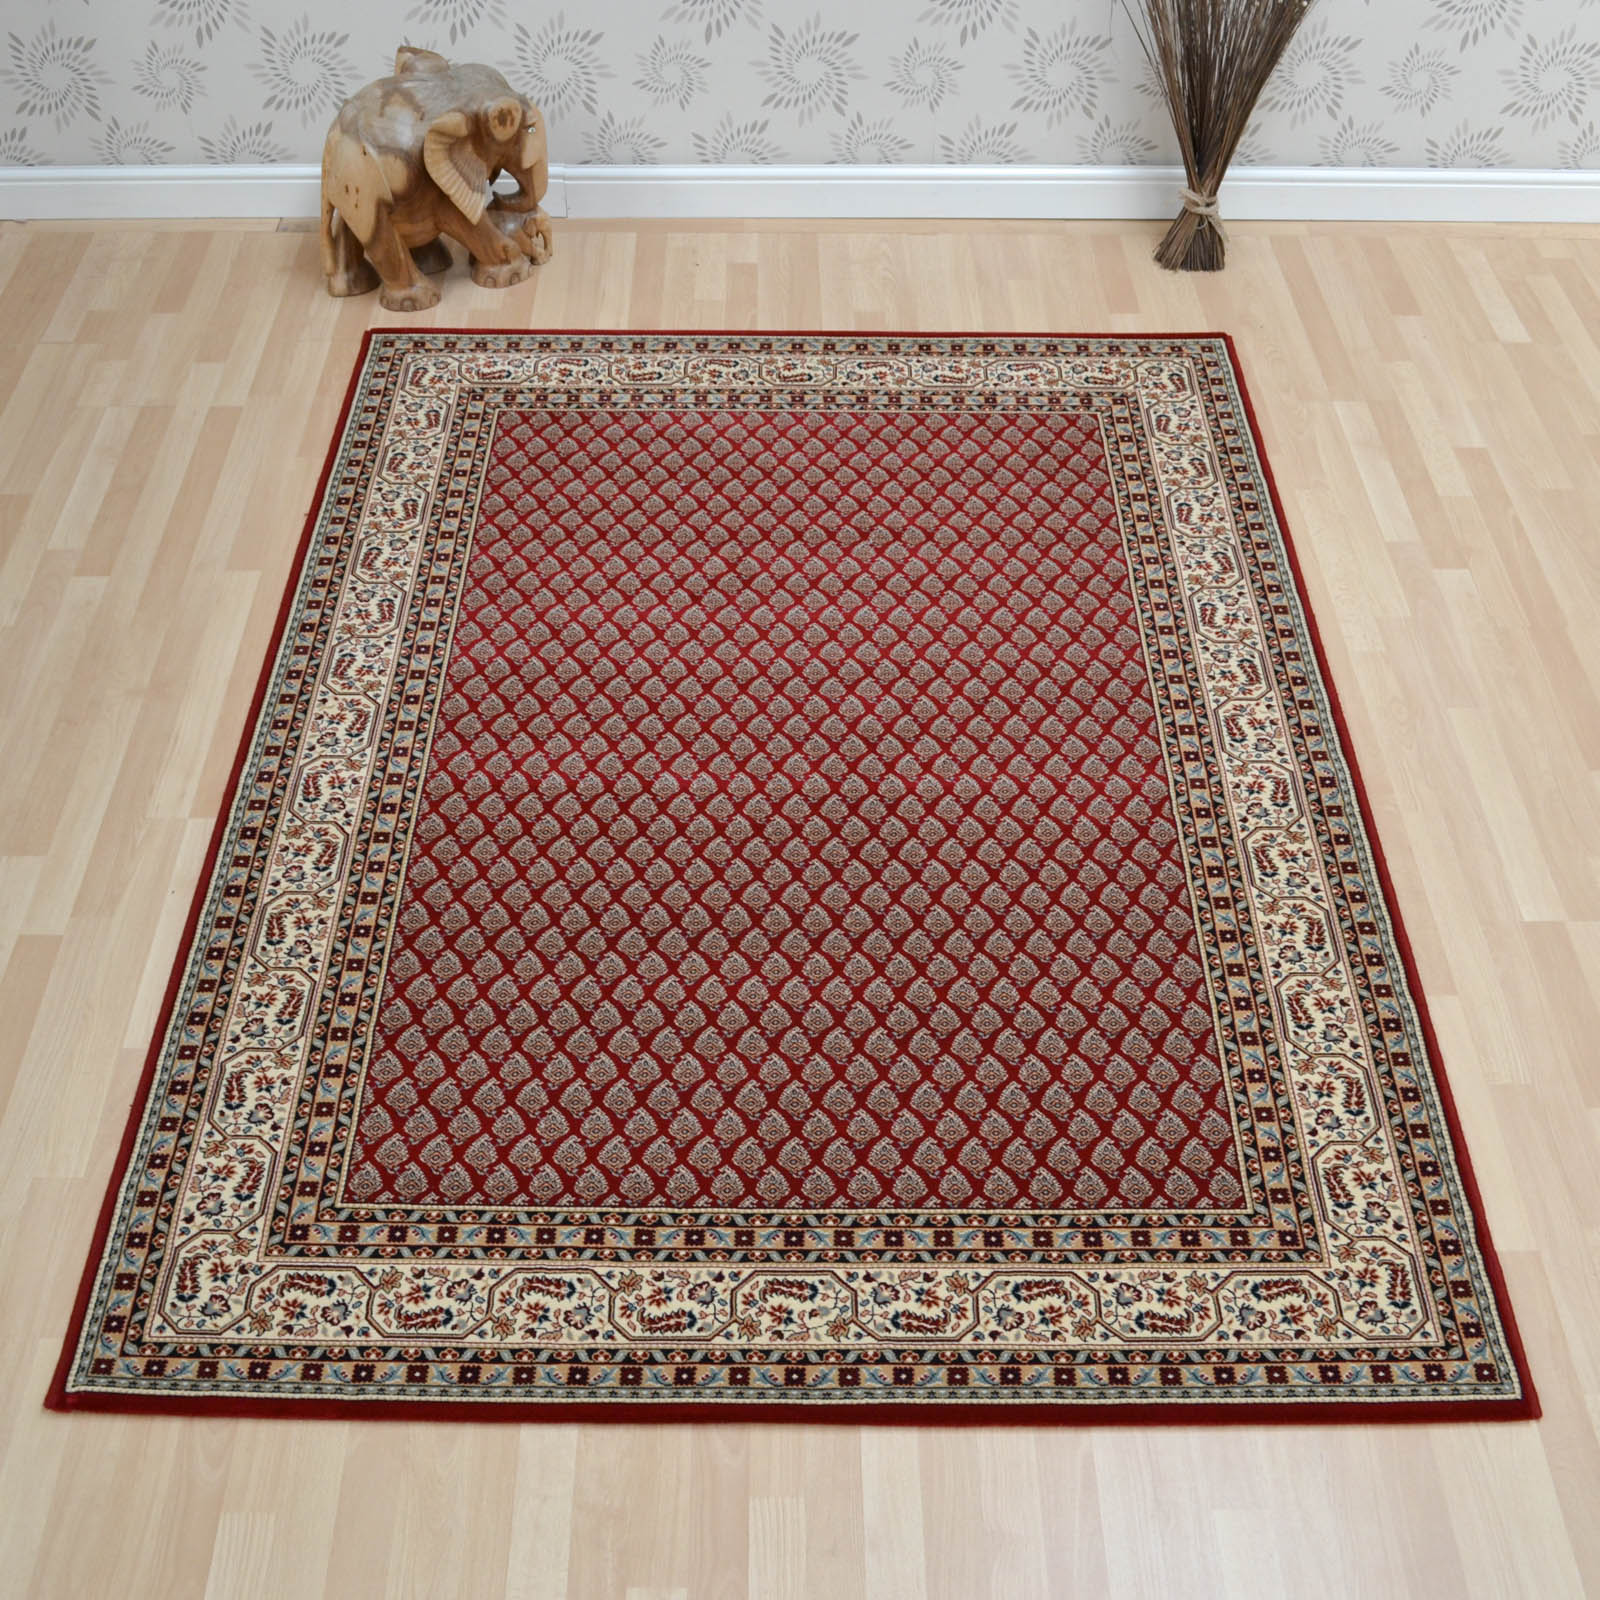 Lano Kasbah Rugs 12264 474 Red